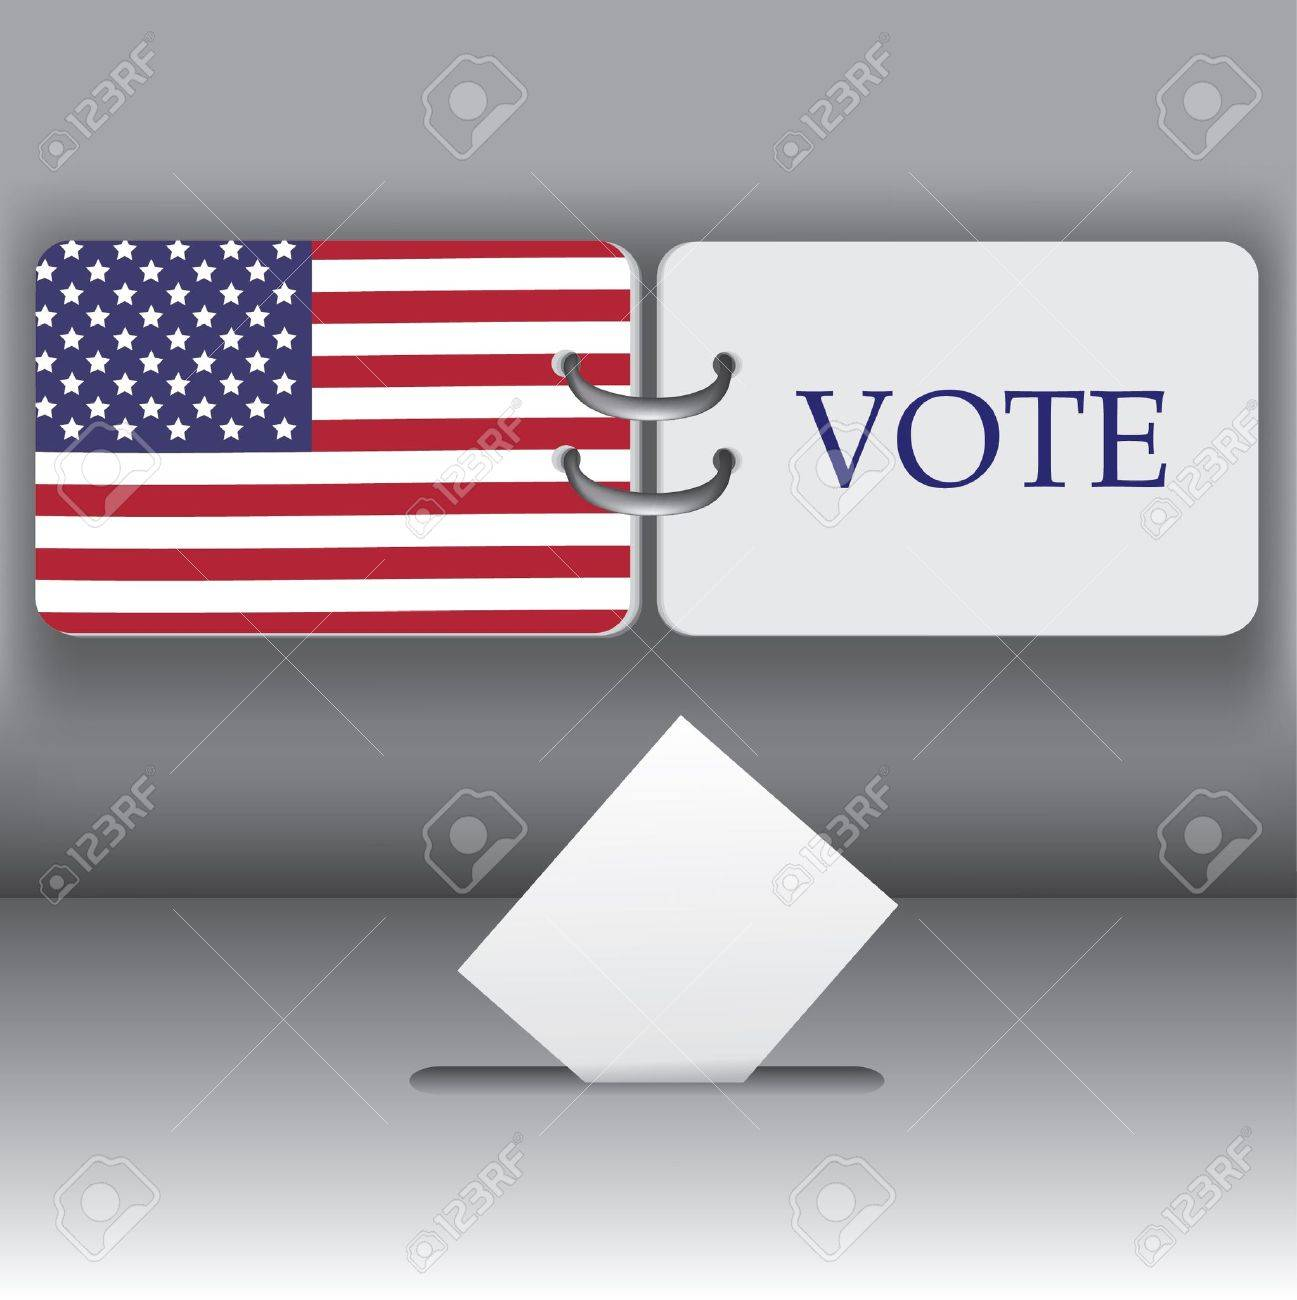 USA 2012  presidential election background Stock Vector - 10388866